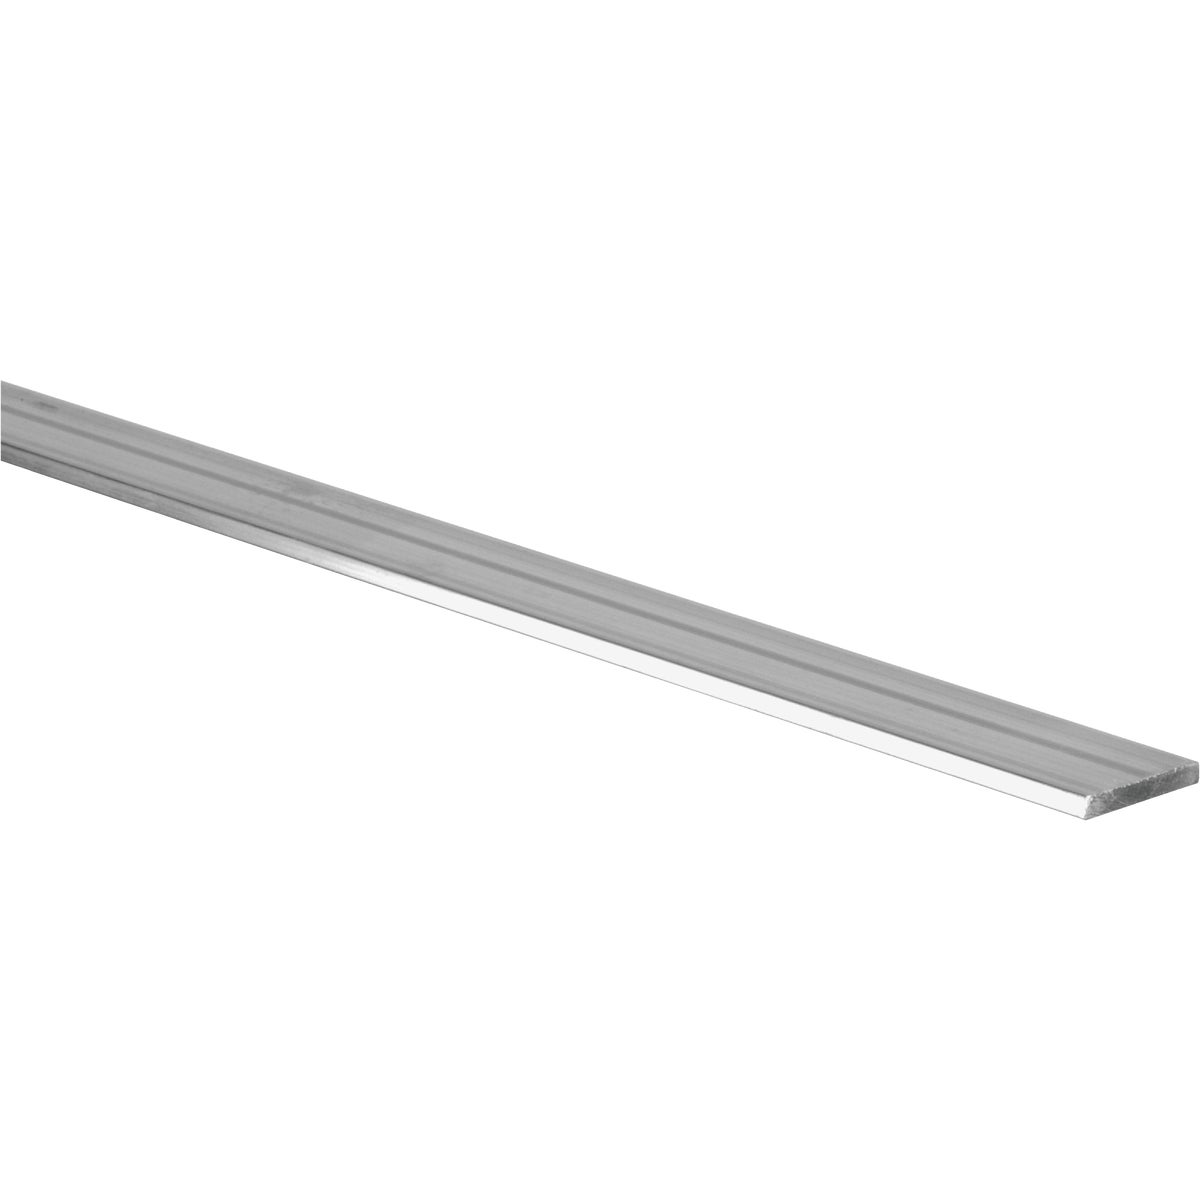 1/8X3/4X6' ALUMINUM FLAT - N247049 by National Mfg Co